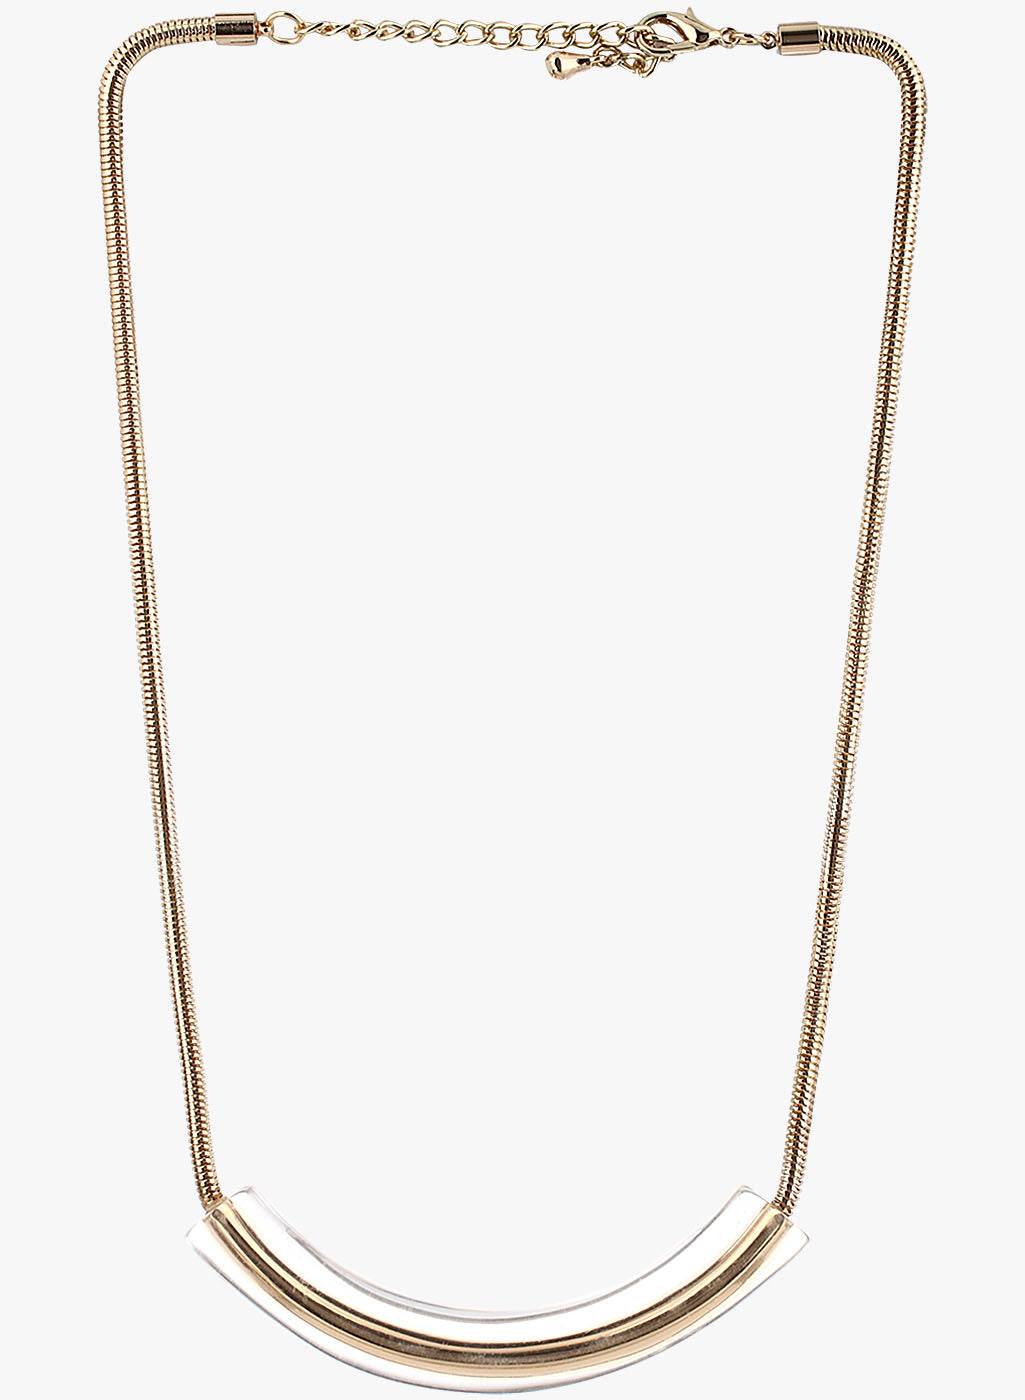 ELOUISE NECKLACE